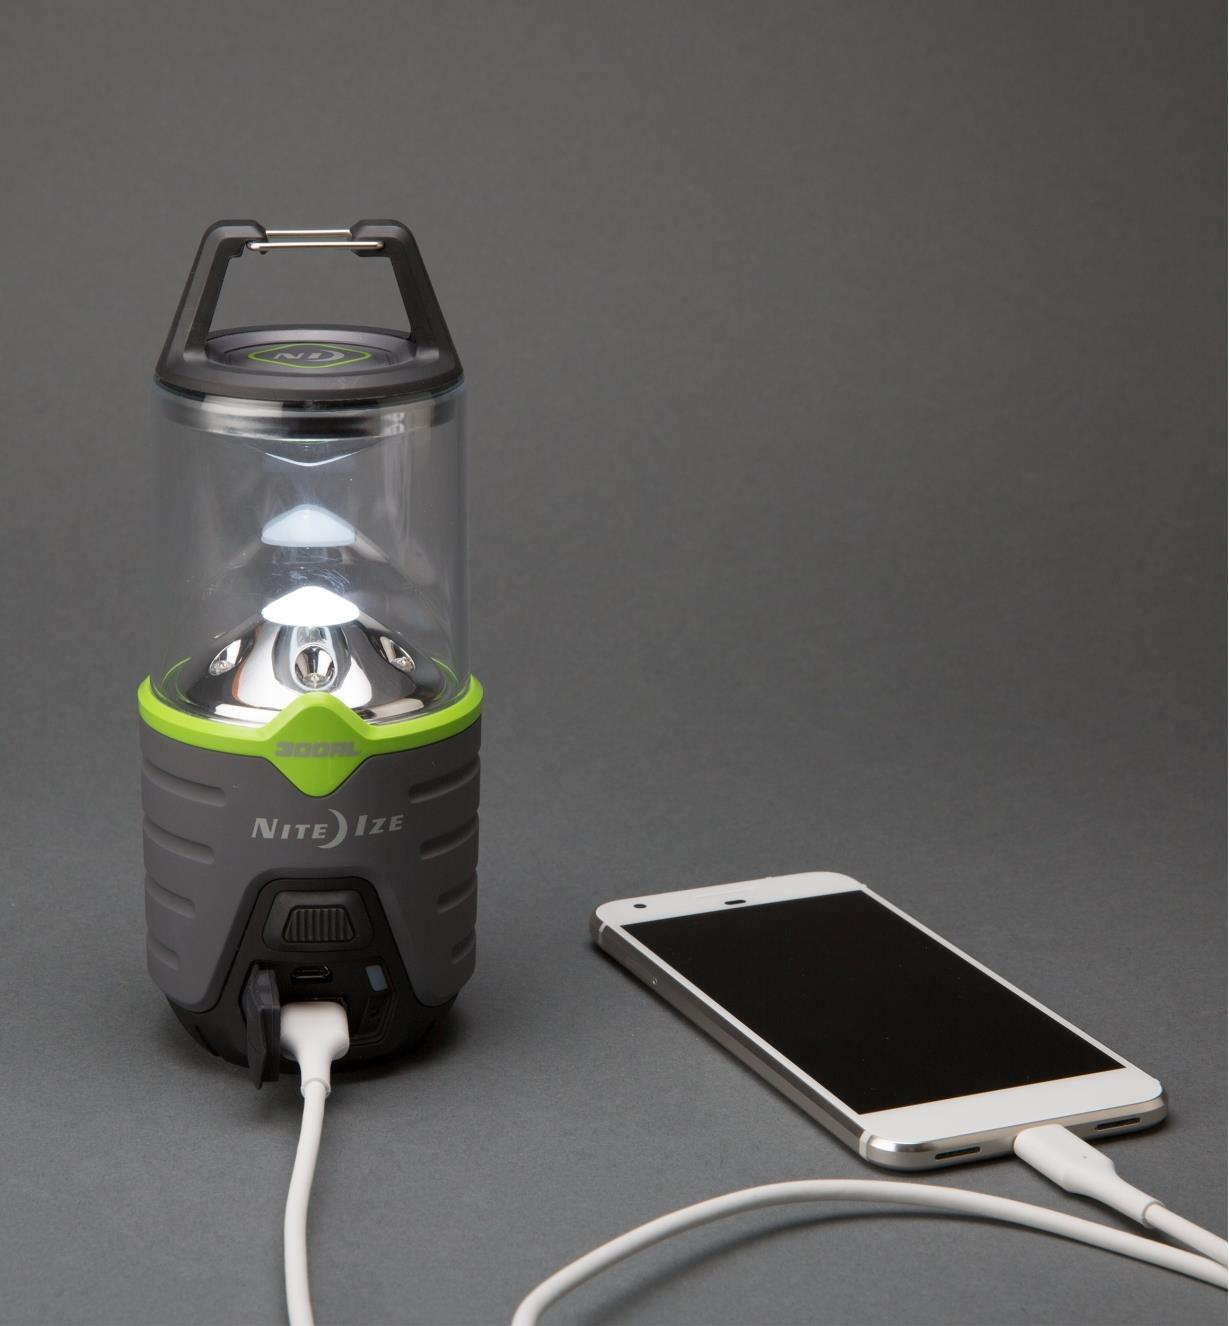 300 lm Nite Ize Rechargeable Radiant Lantern charging a smartphone